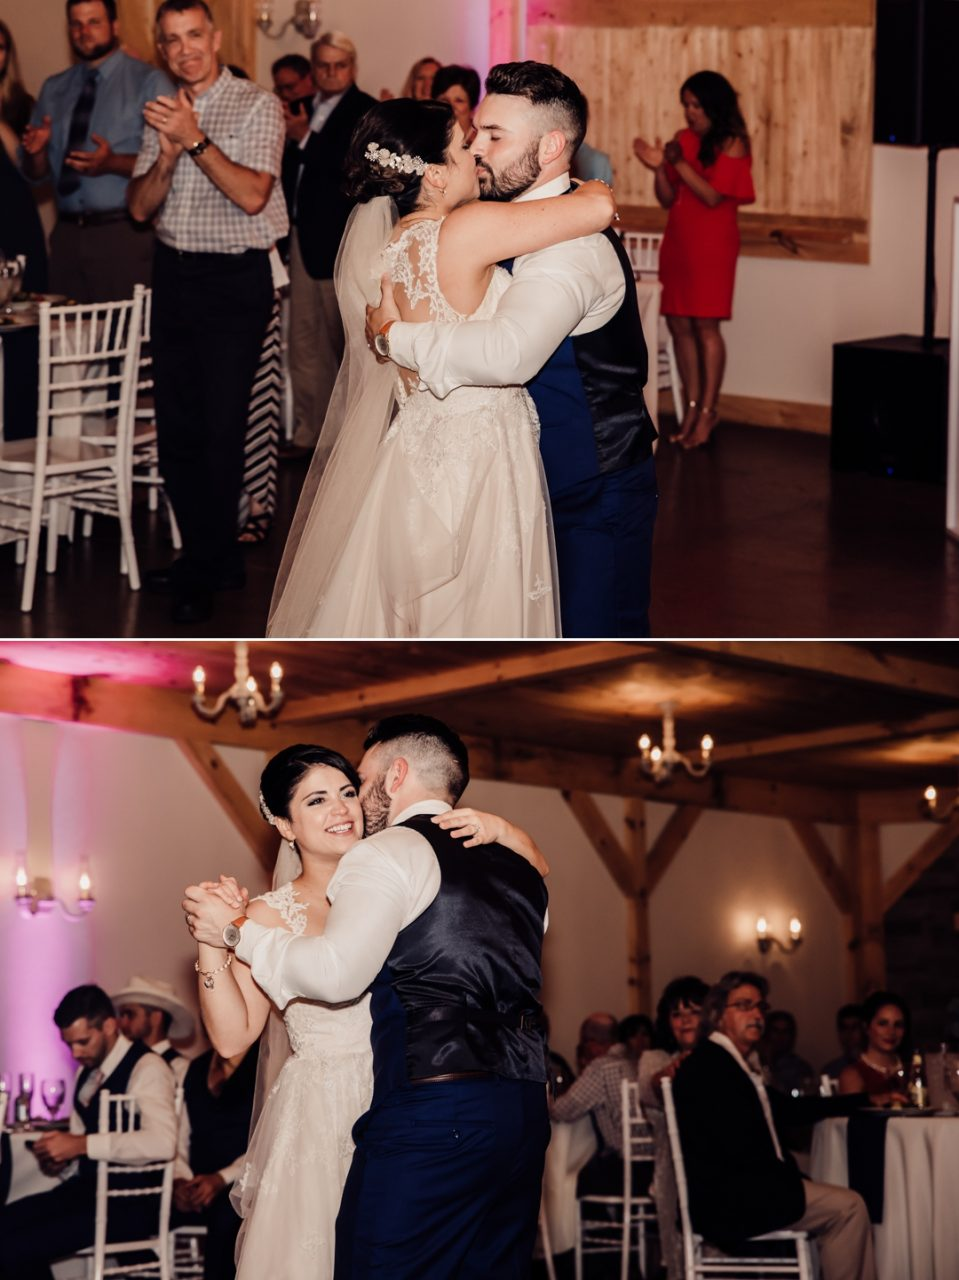 David + Maria | Wedding at The Place At 534 |First Dance